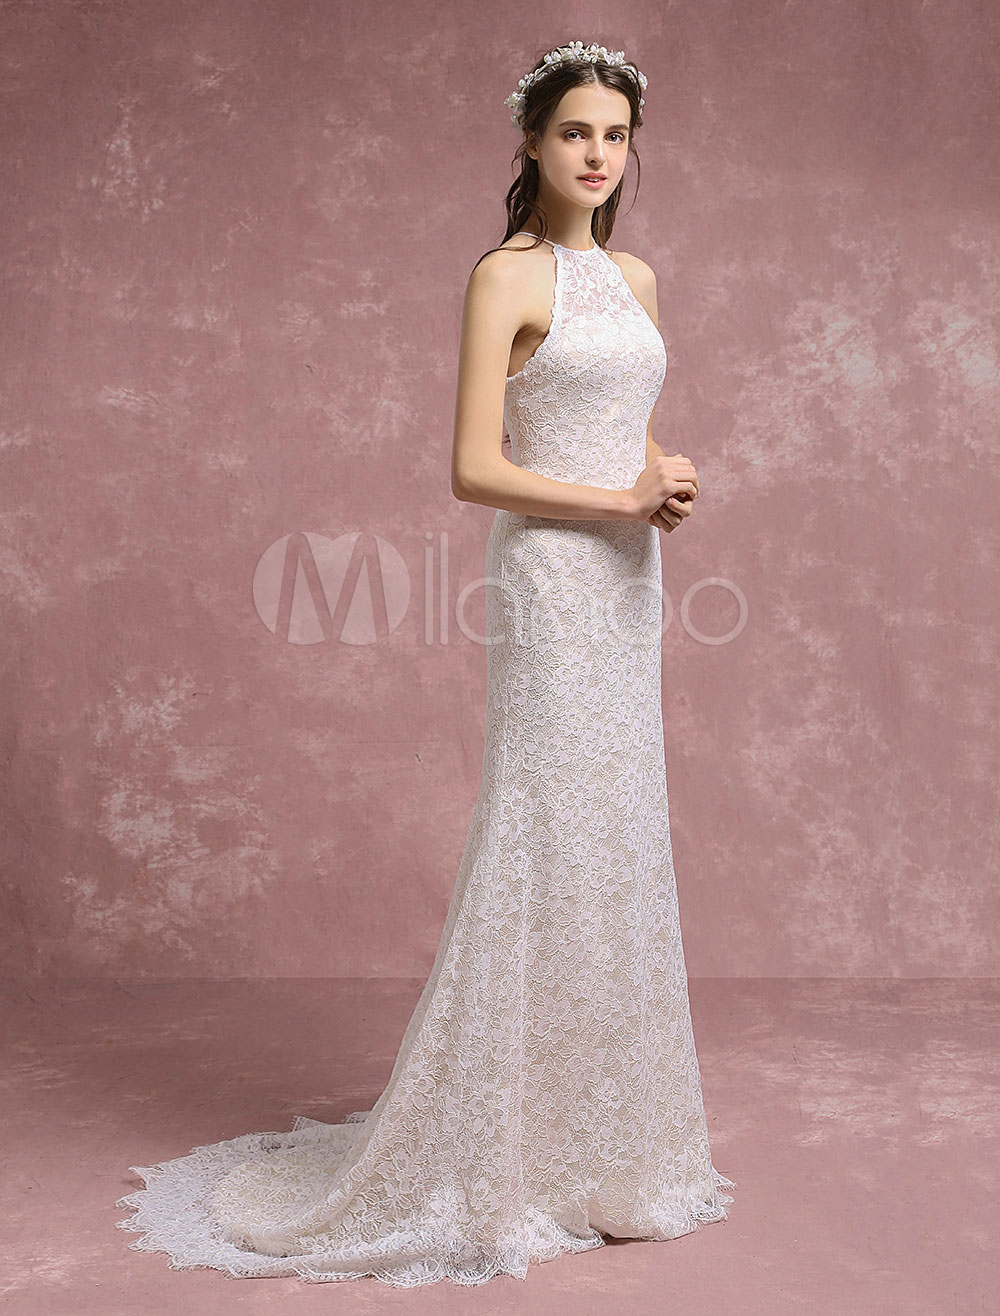 ca18273c6b03 Summer Wedding Dresses 2019 Lace Boho Mermaid Bridal Gown Halter ...